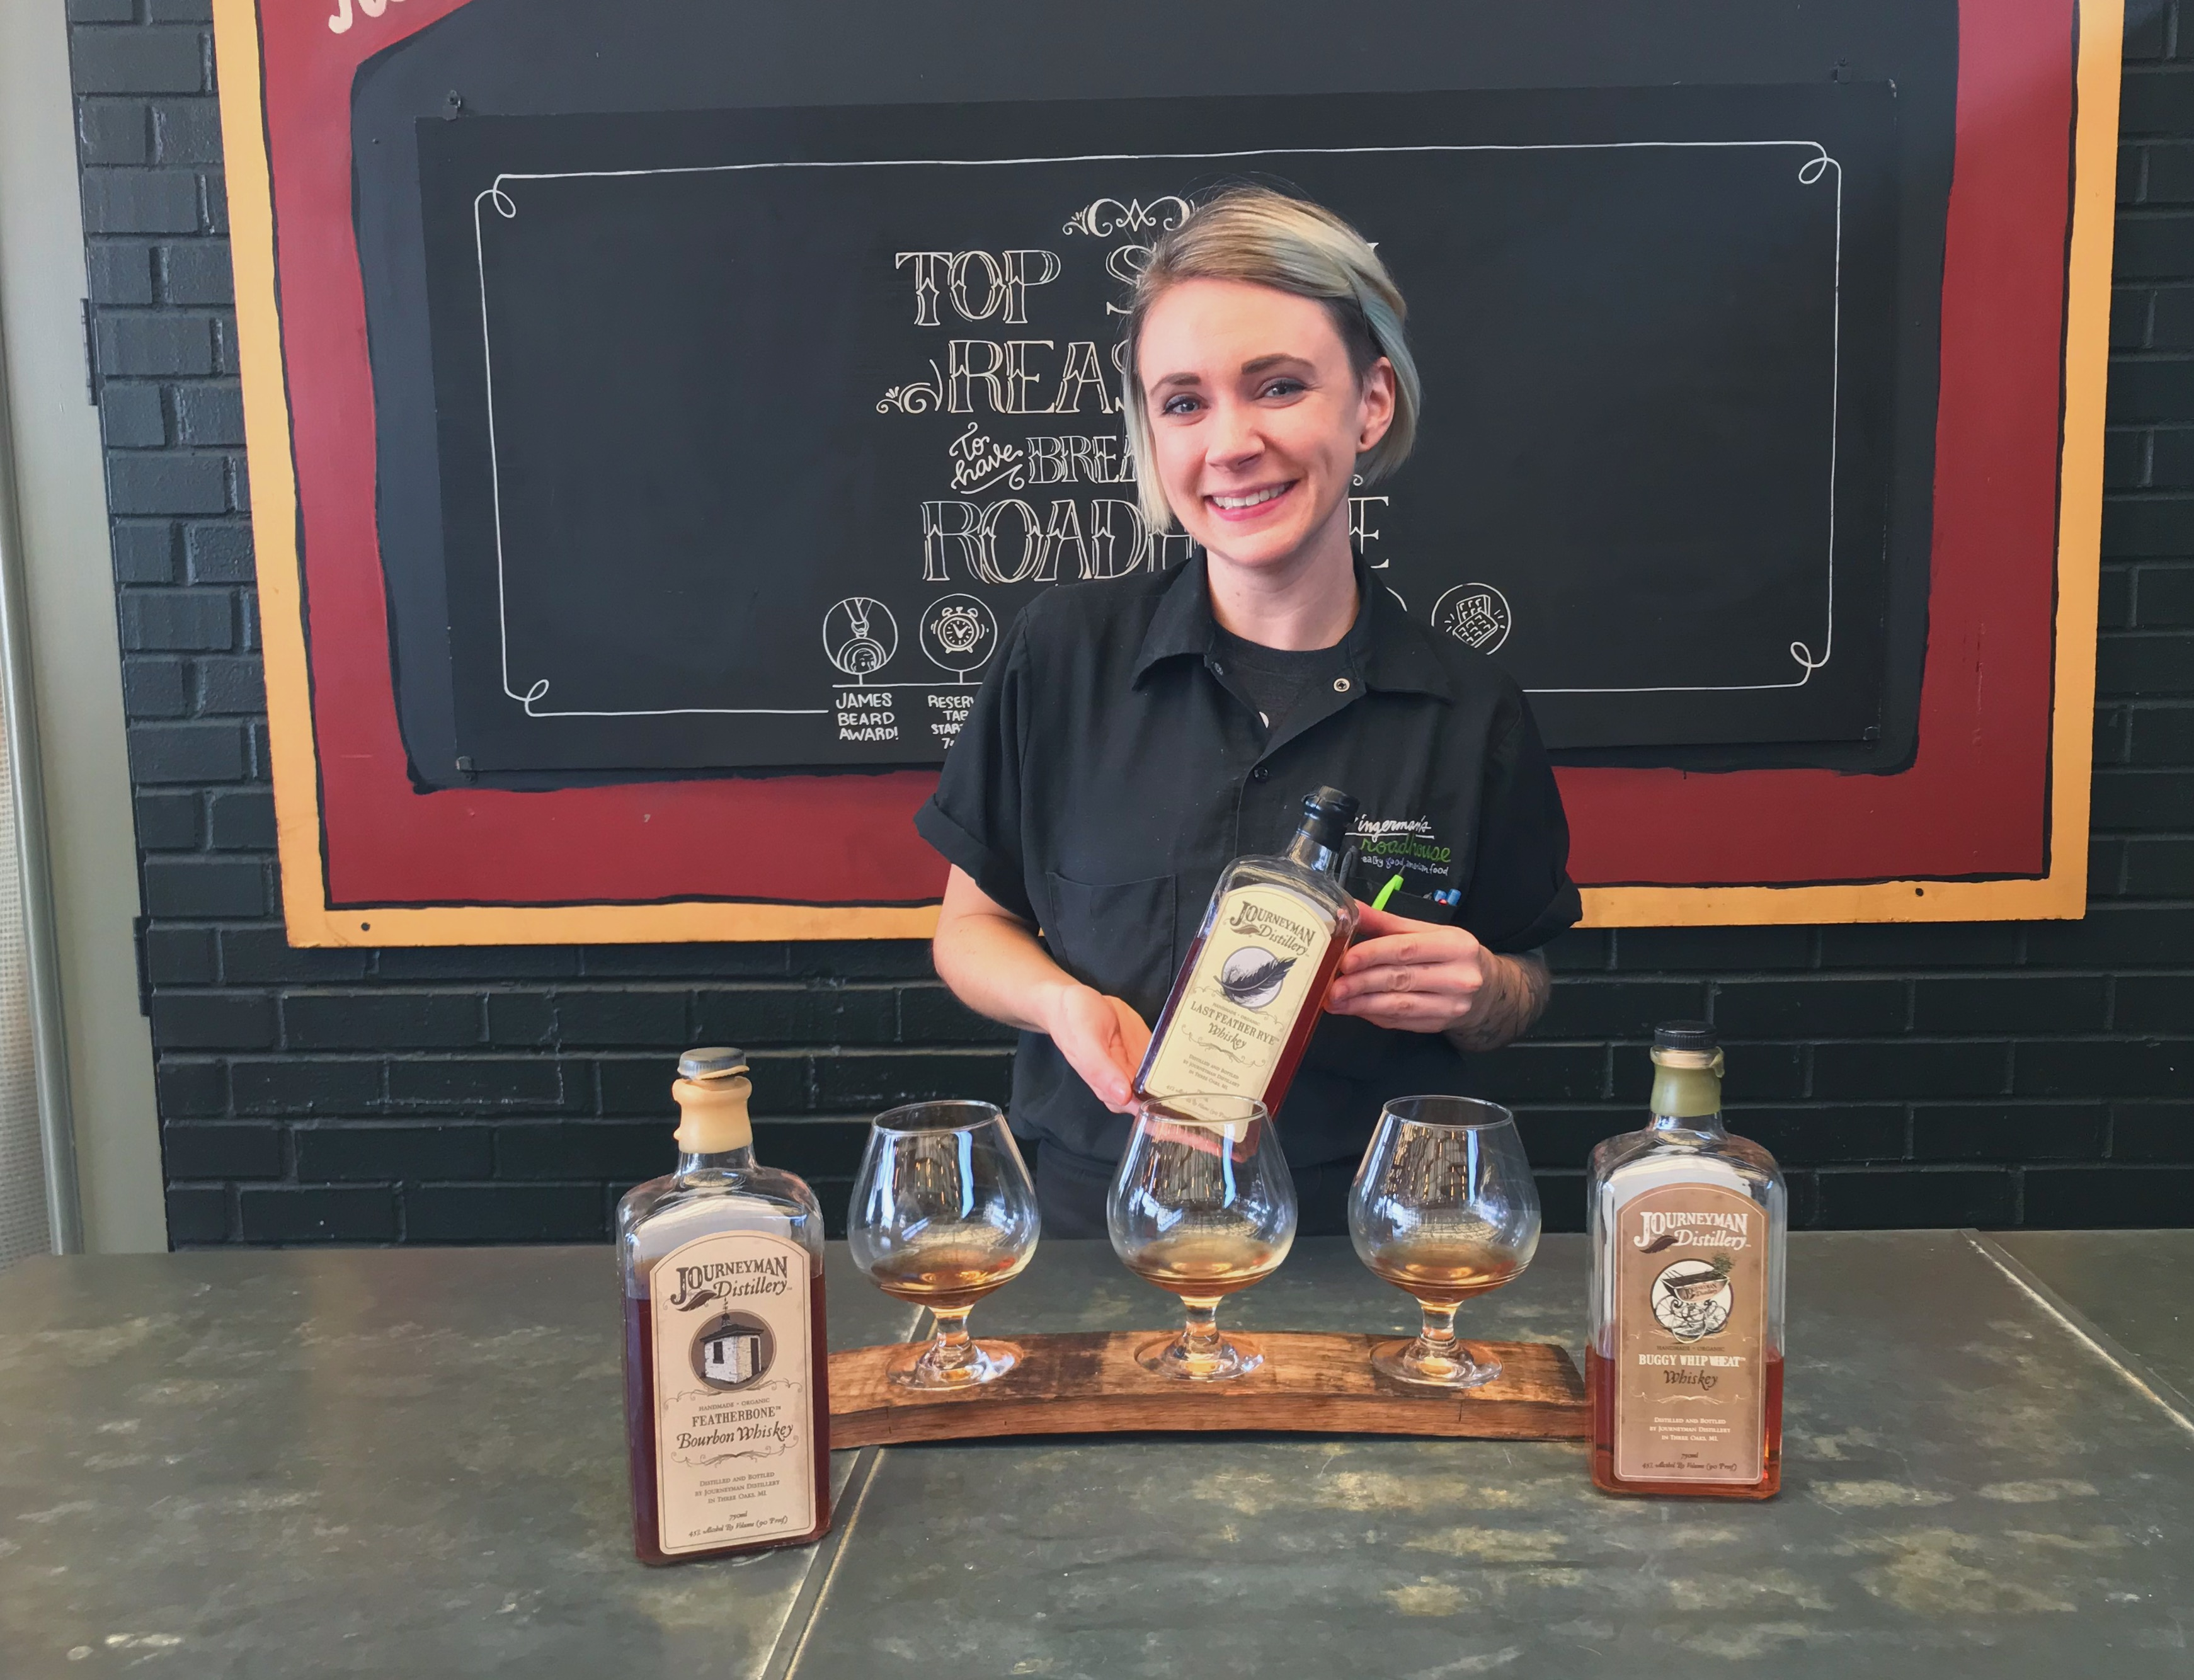 Journeyman Distillery: From Grain, to Glass, to Roadhouse